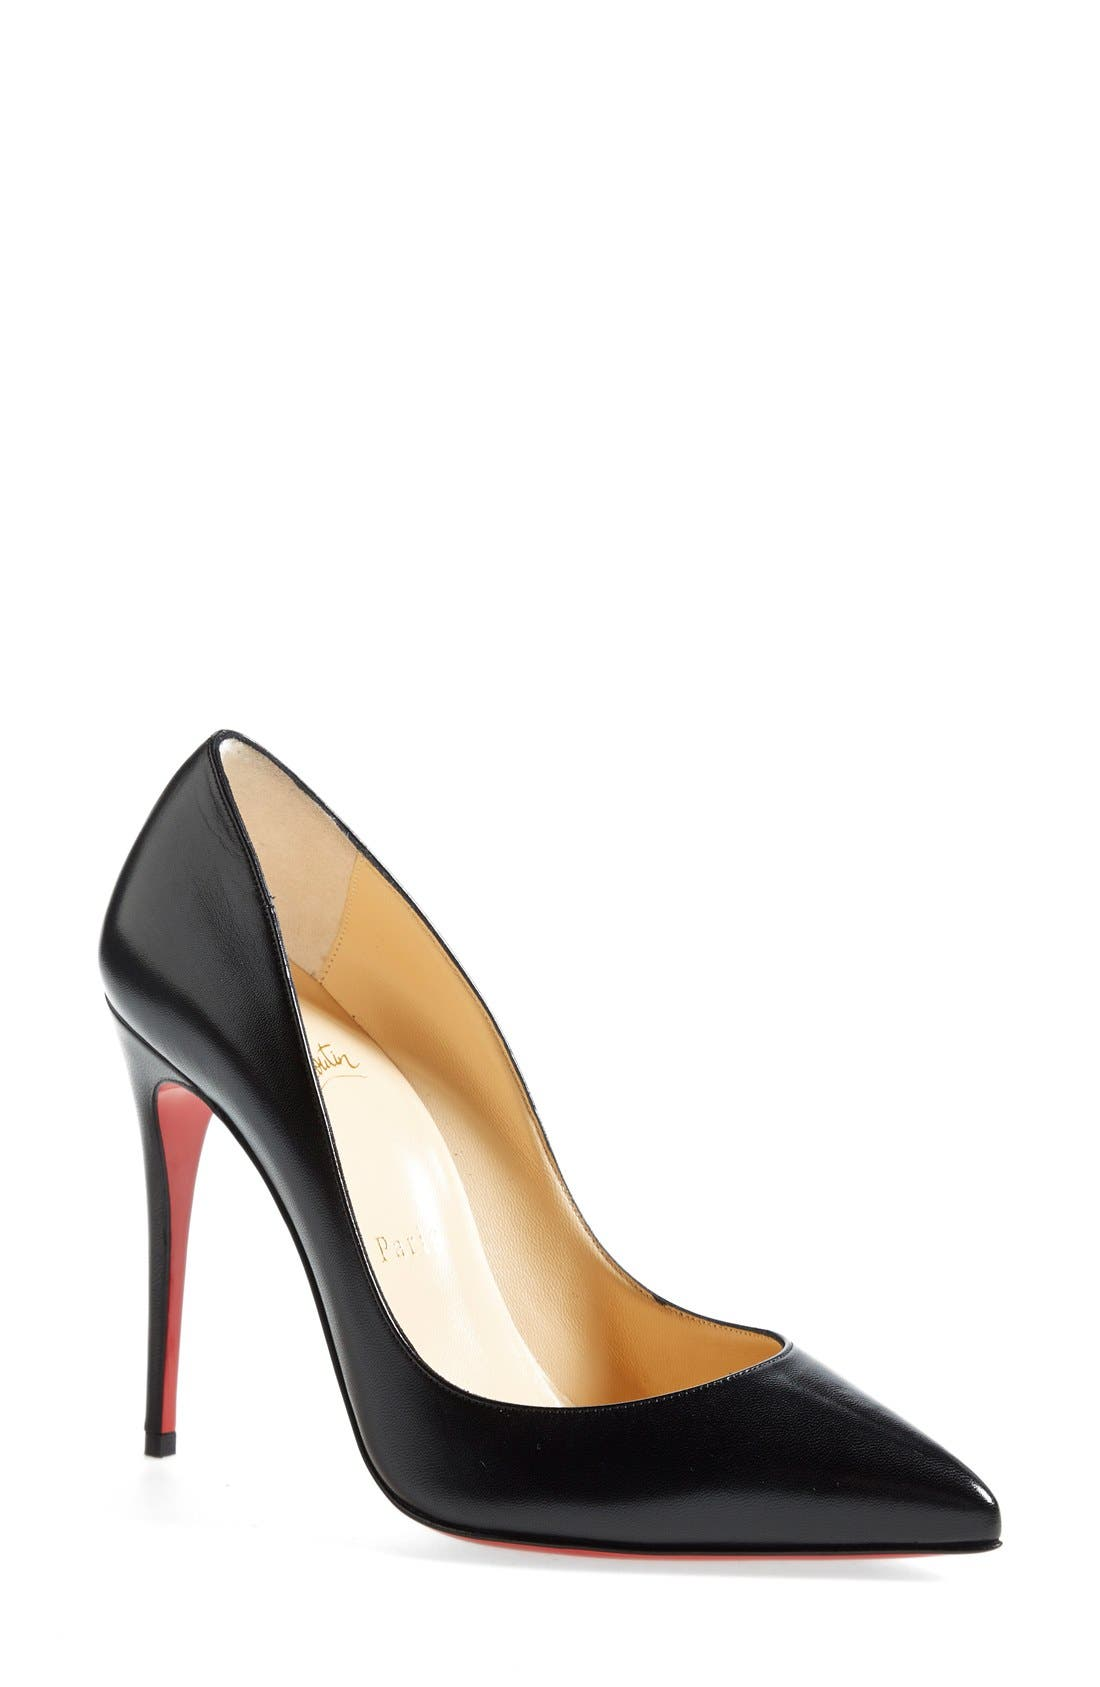 Main Image - Christian Louboutin 'Pigalle' Pointy Toe Pump